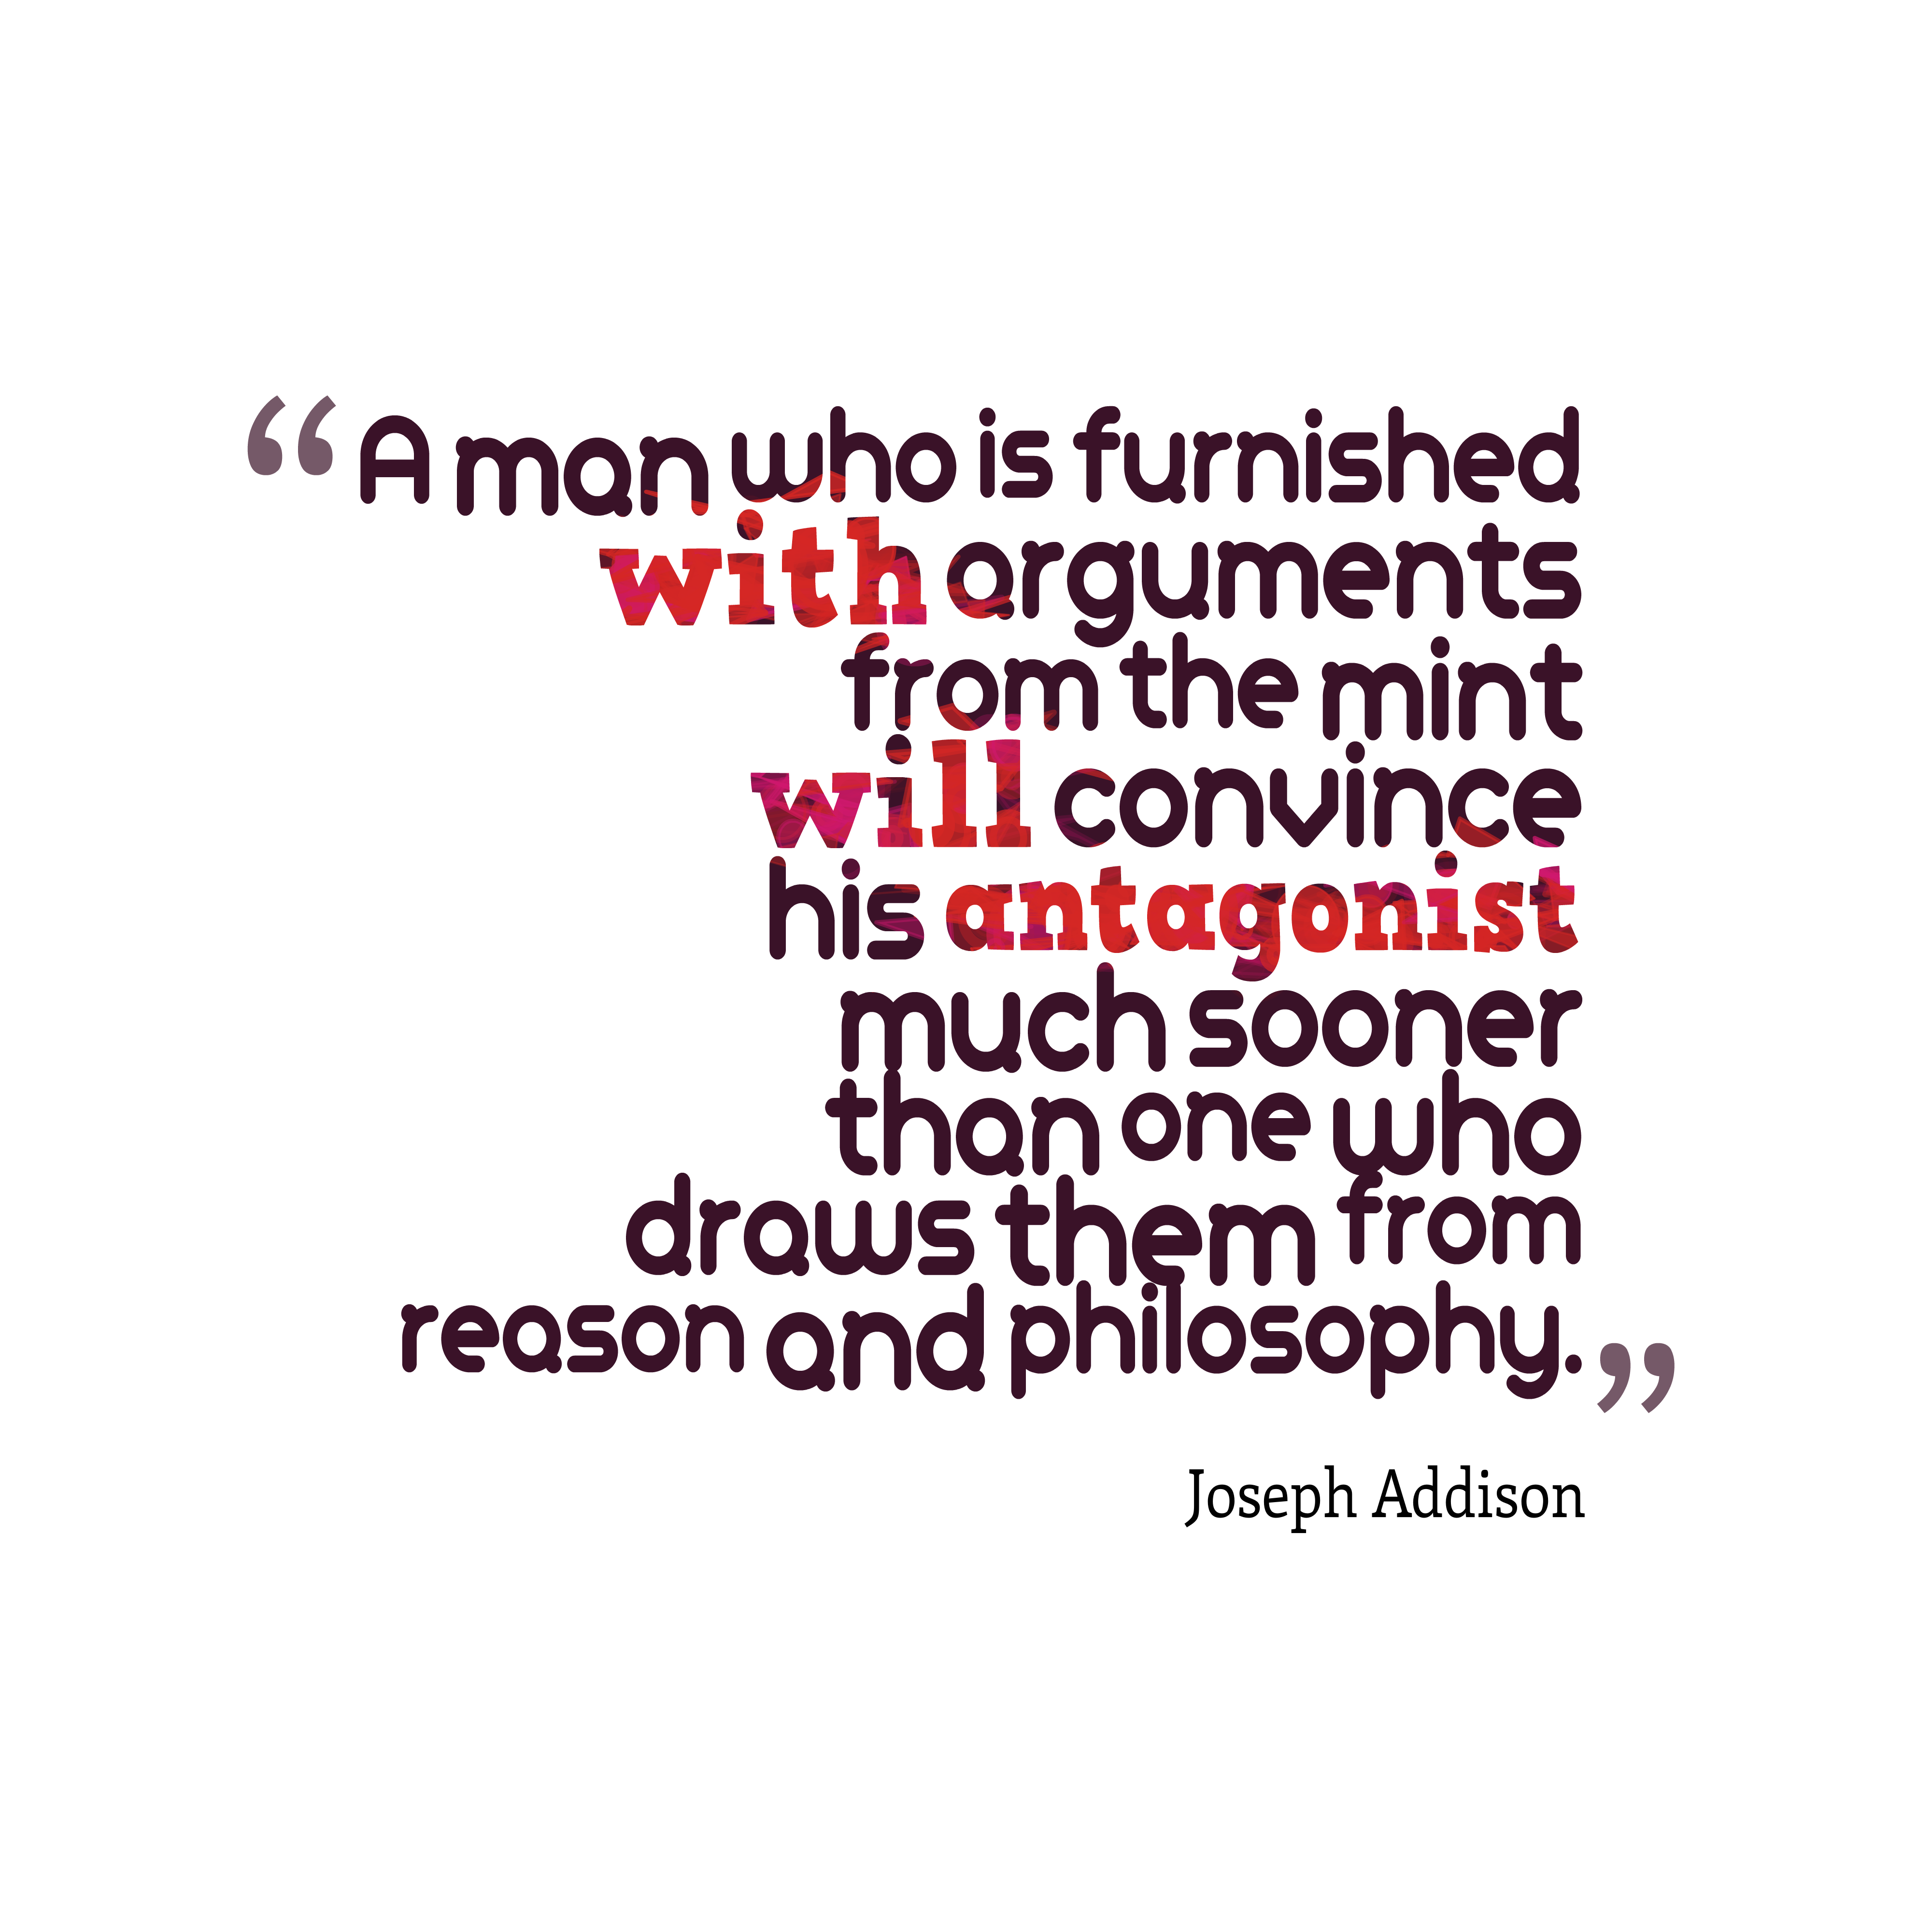 Quotes image of A man who is furnished with arguments from the mint will convince his antagonist much sooner than one who draws them from reason and philosophy.